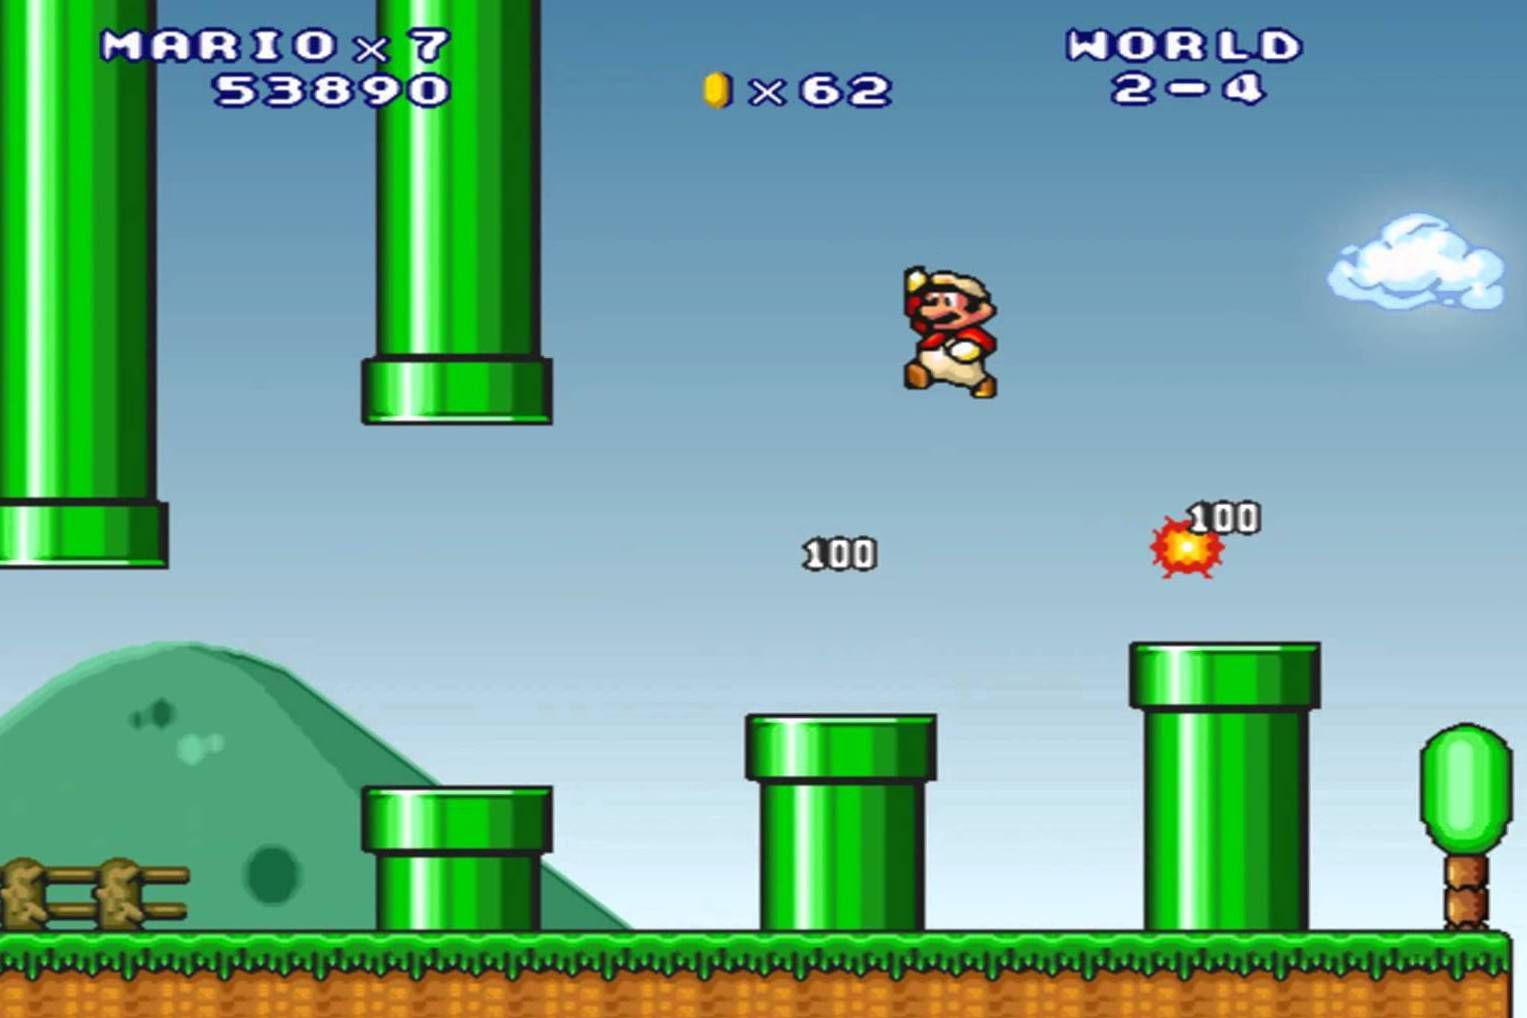 Free Download for 'Super Mario 3: Mario Forever' for PC